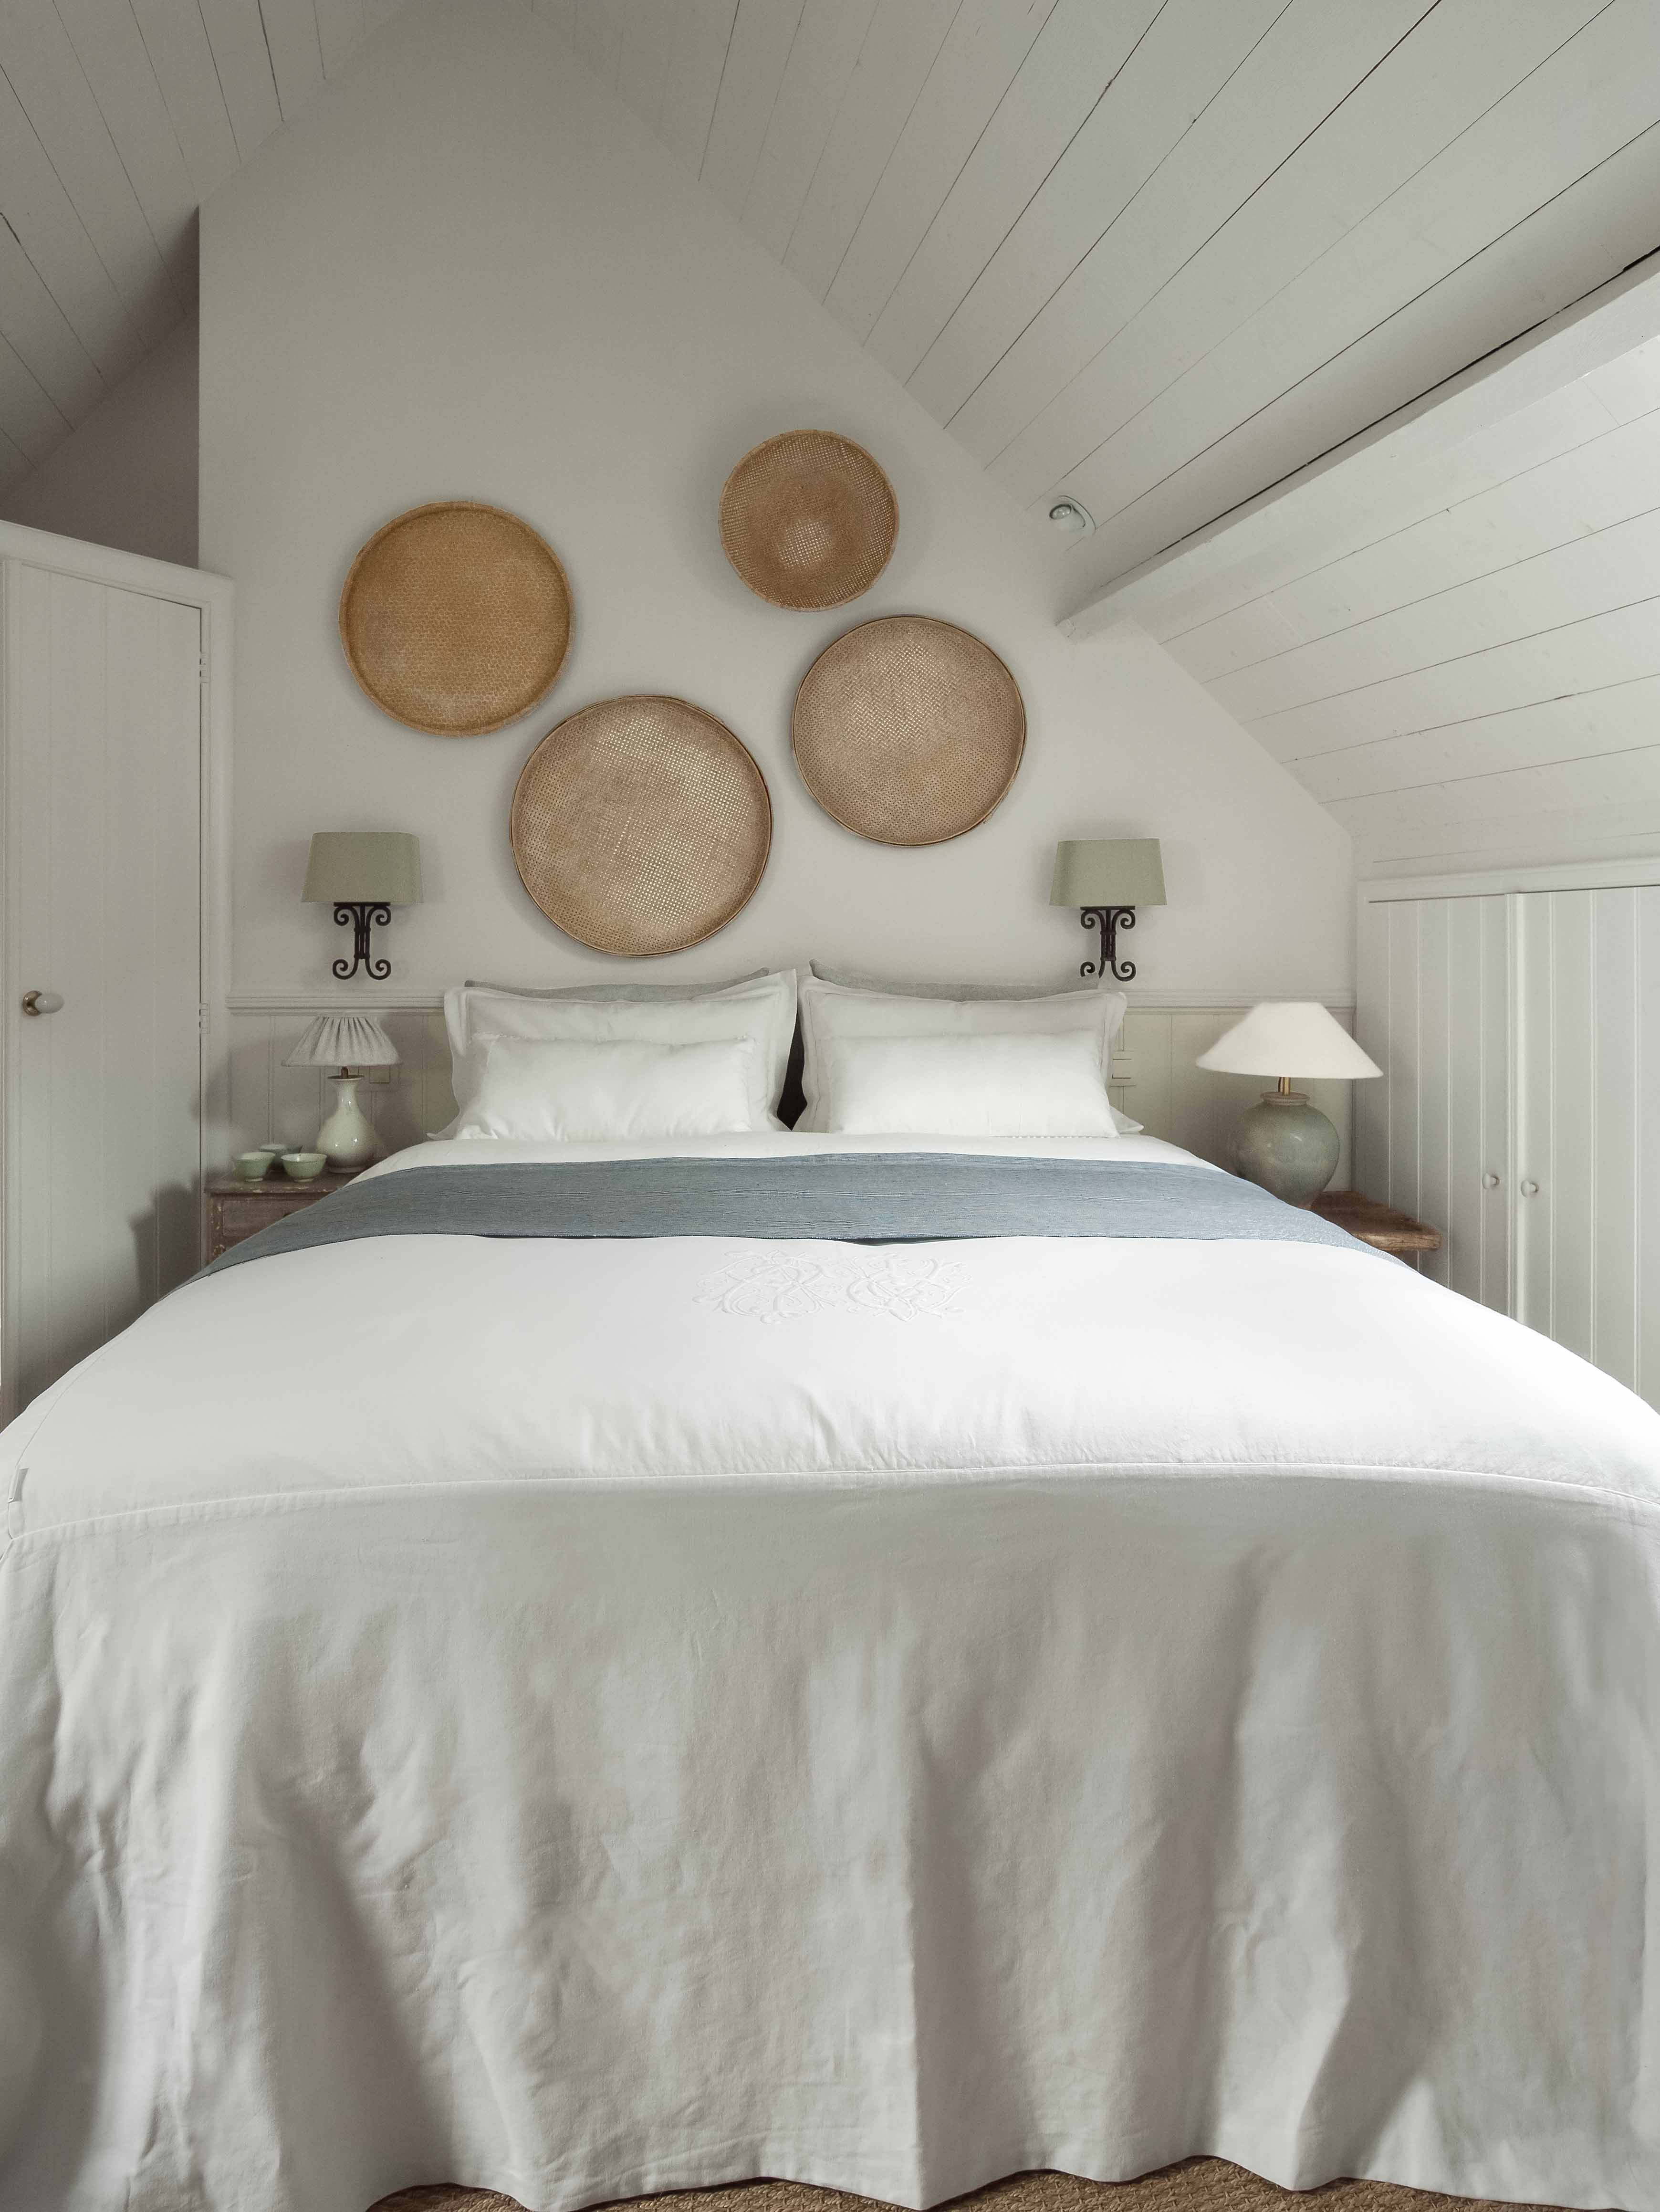 Bedroom at white rooms dormitorios pinterest white rooms